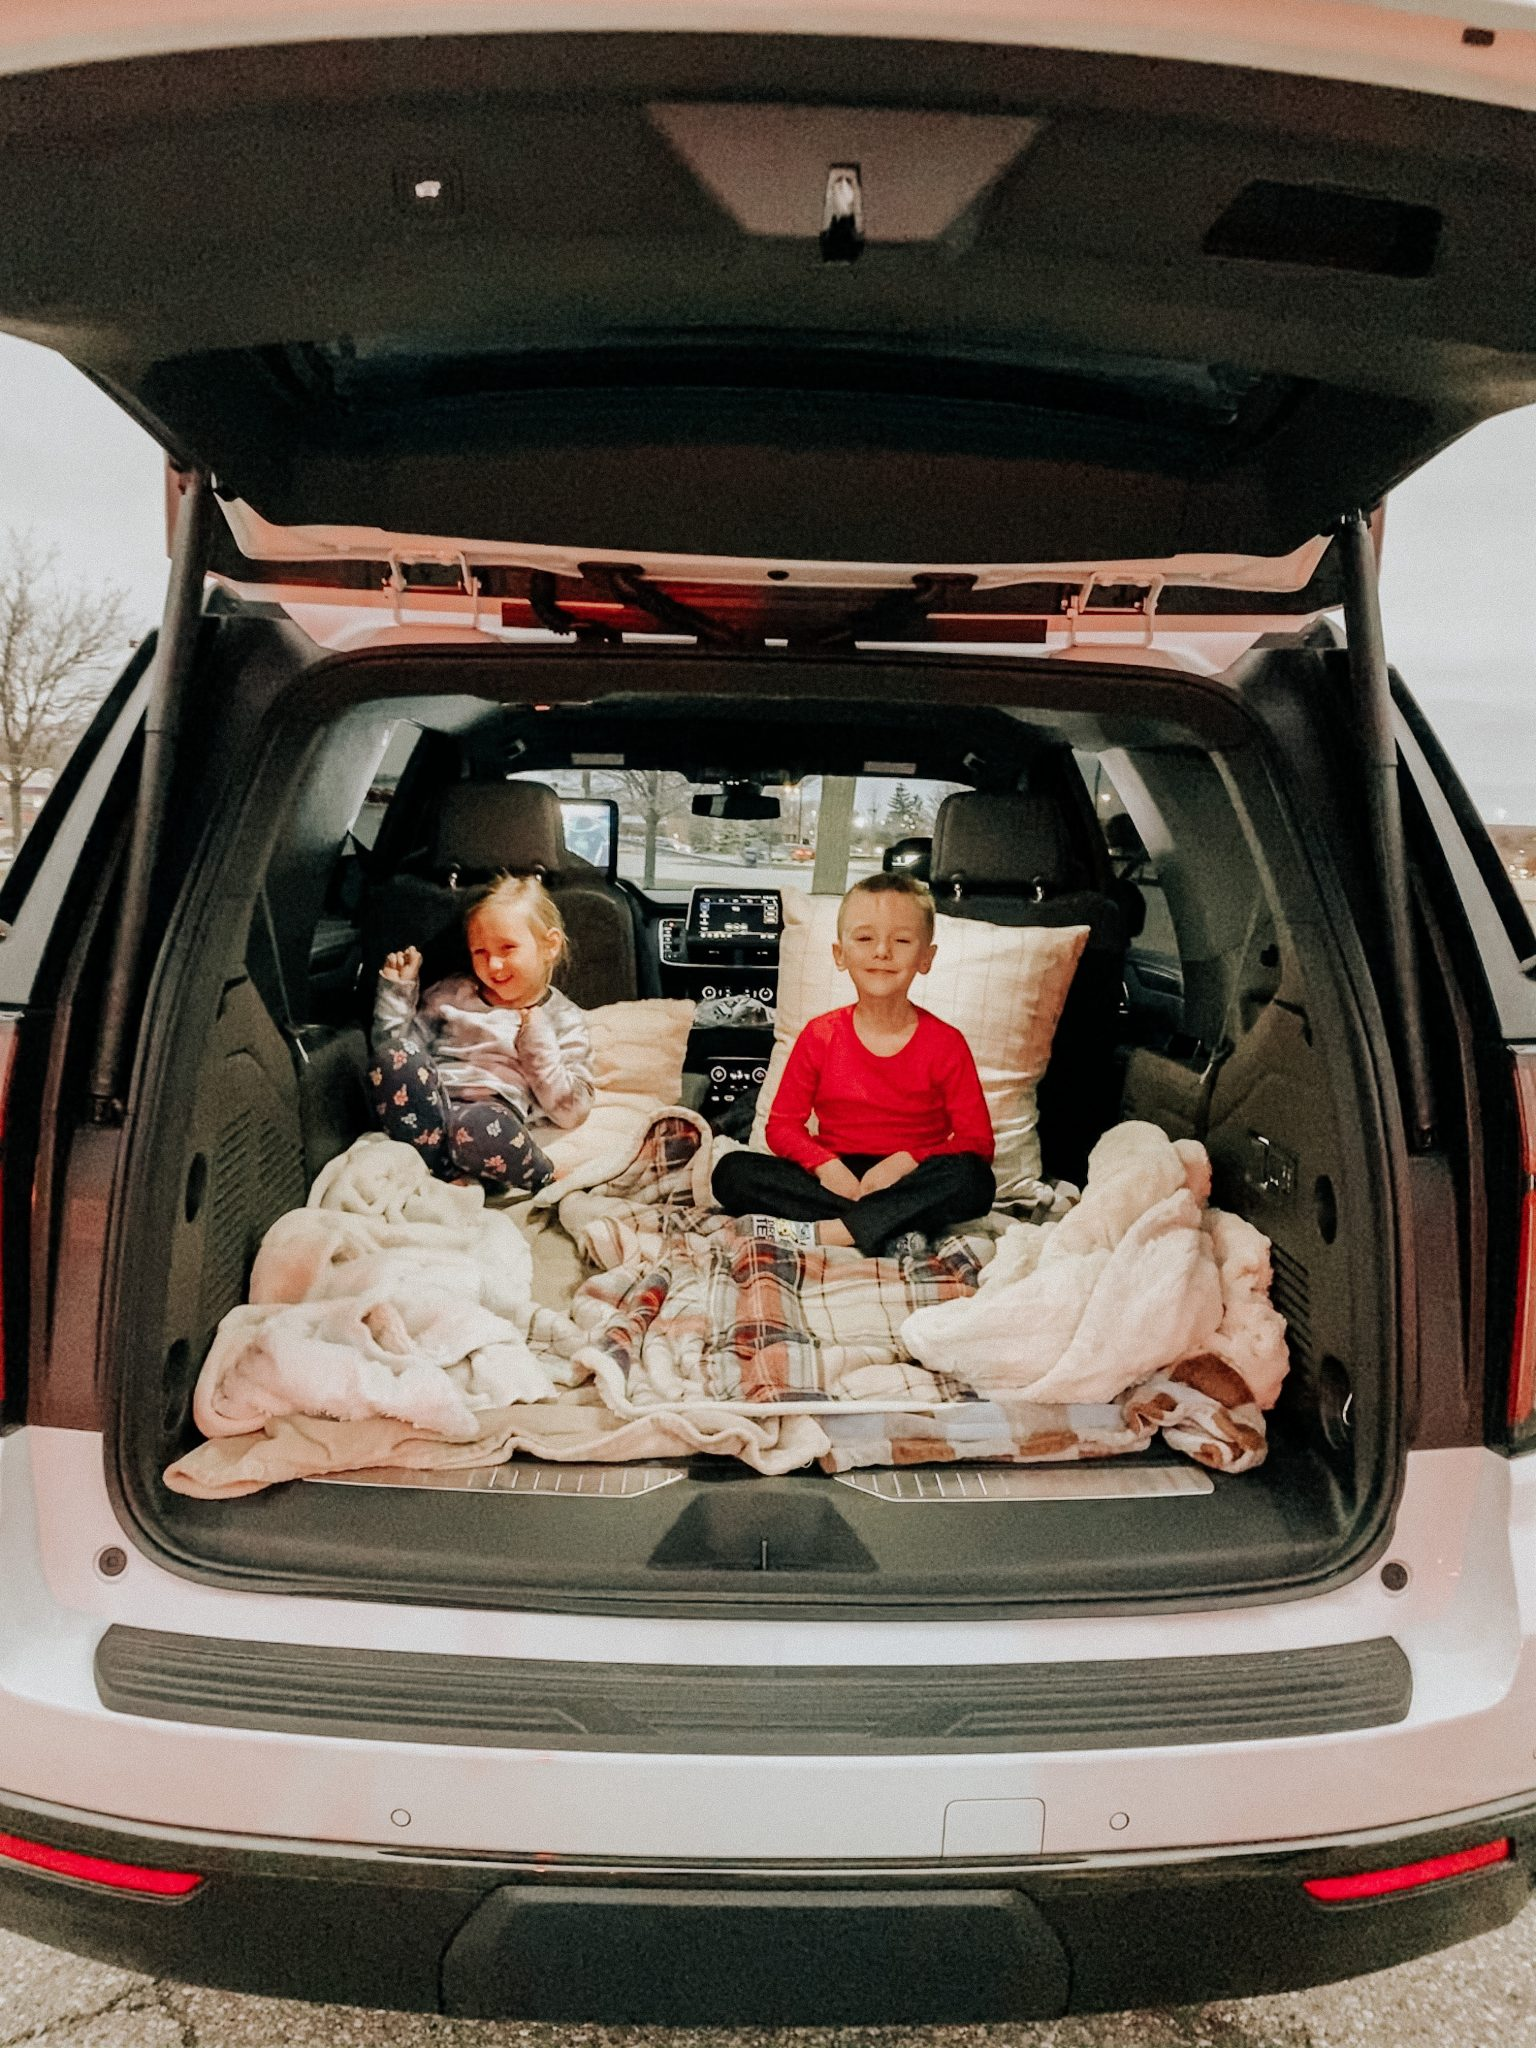 Winter outings with the family | Daily Splendor Life and Style Blog | Drive In Movie #familychristmas #holidayfestivities #familyadventures #chevytahoe #driveinmovie #2020activities #Christmastree #momlife